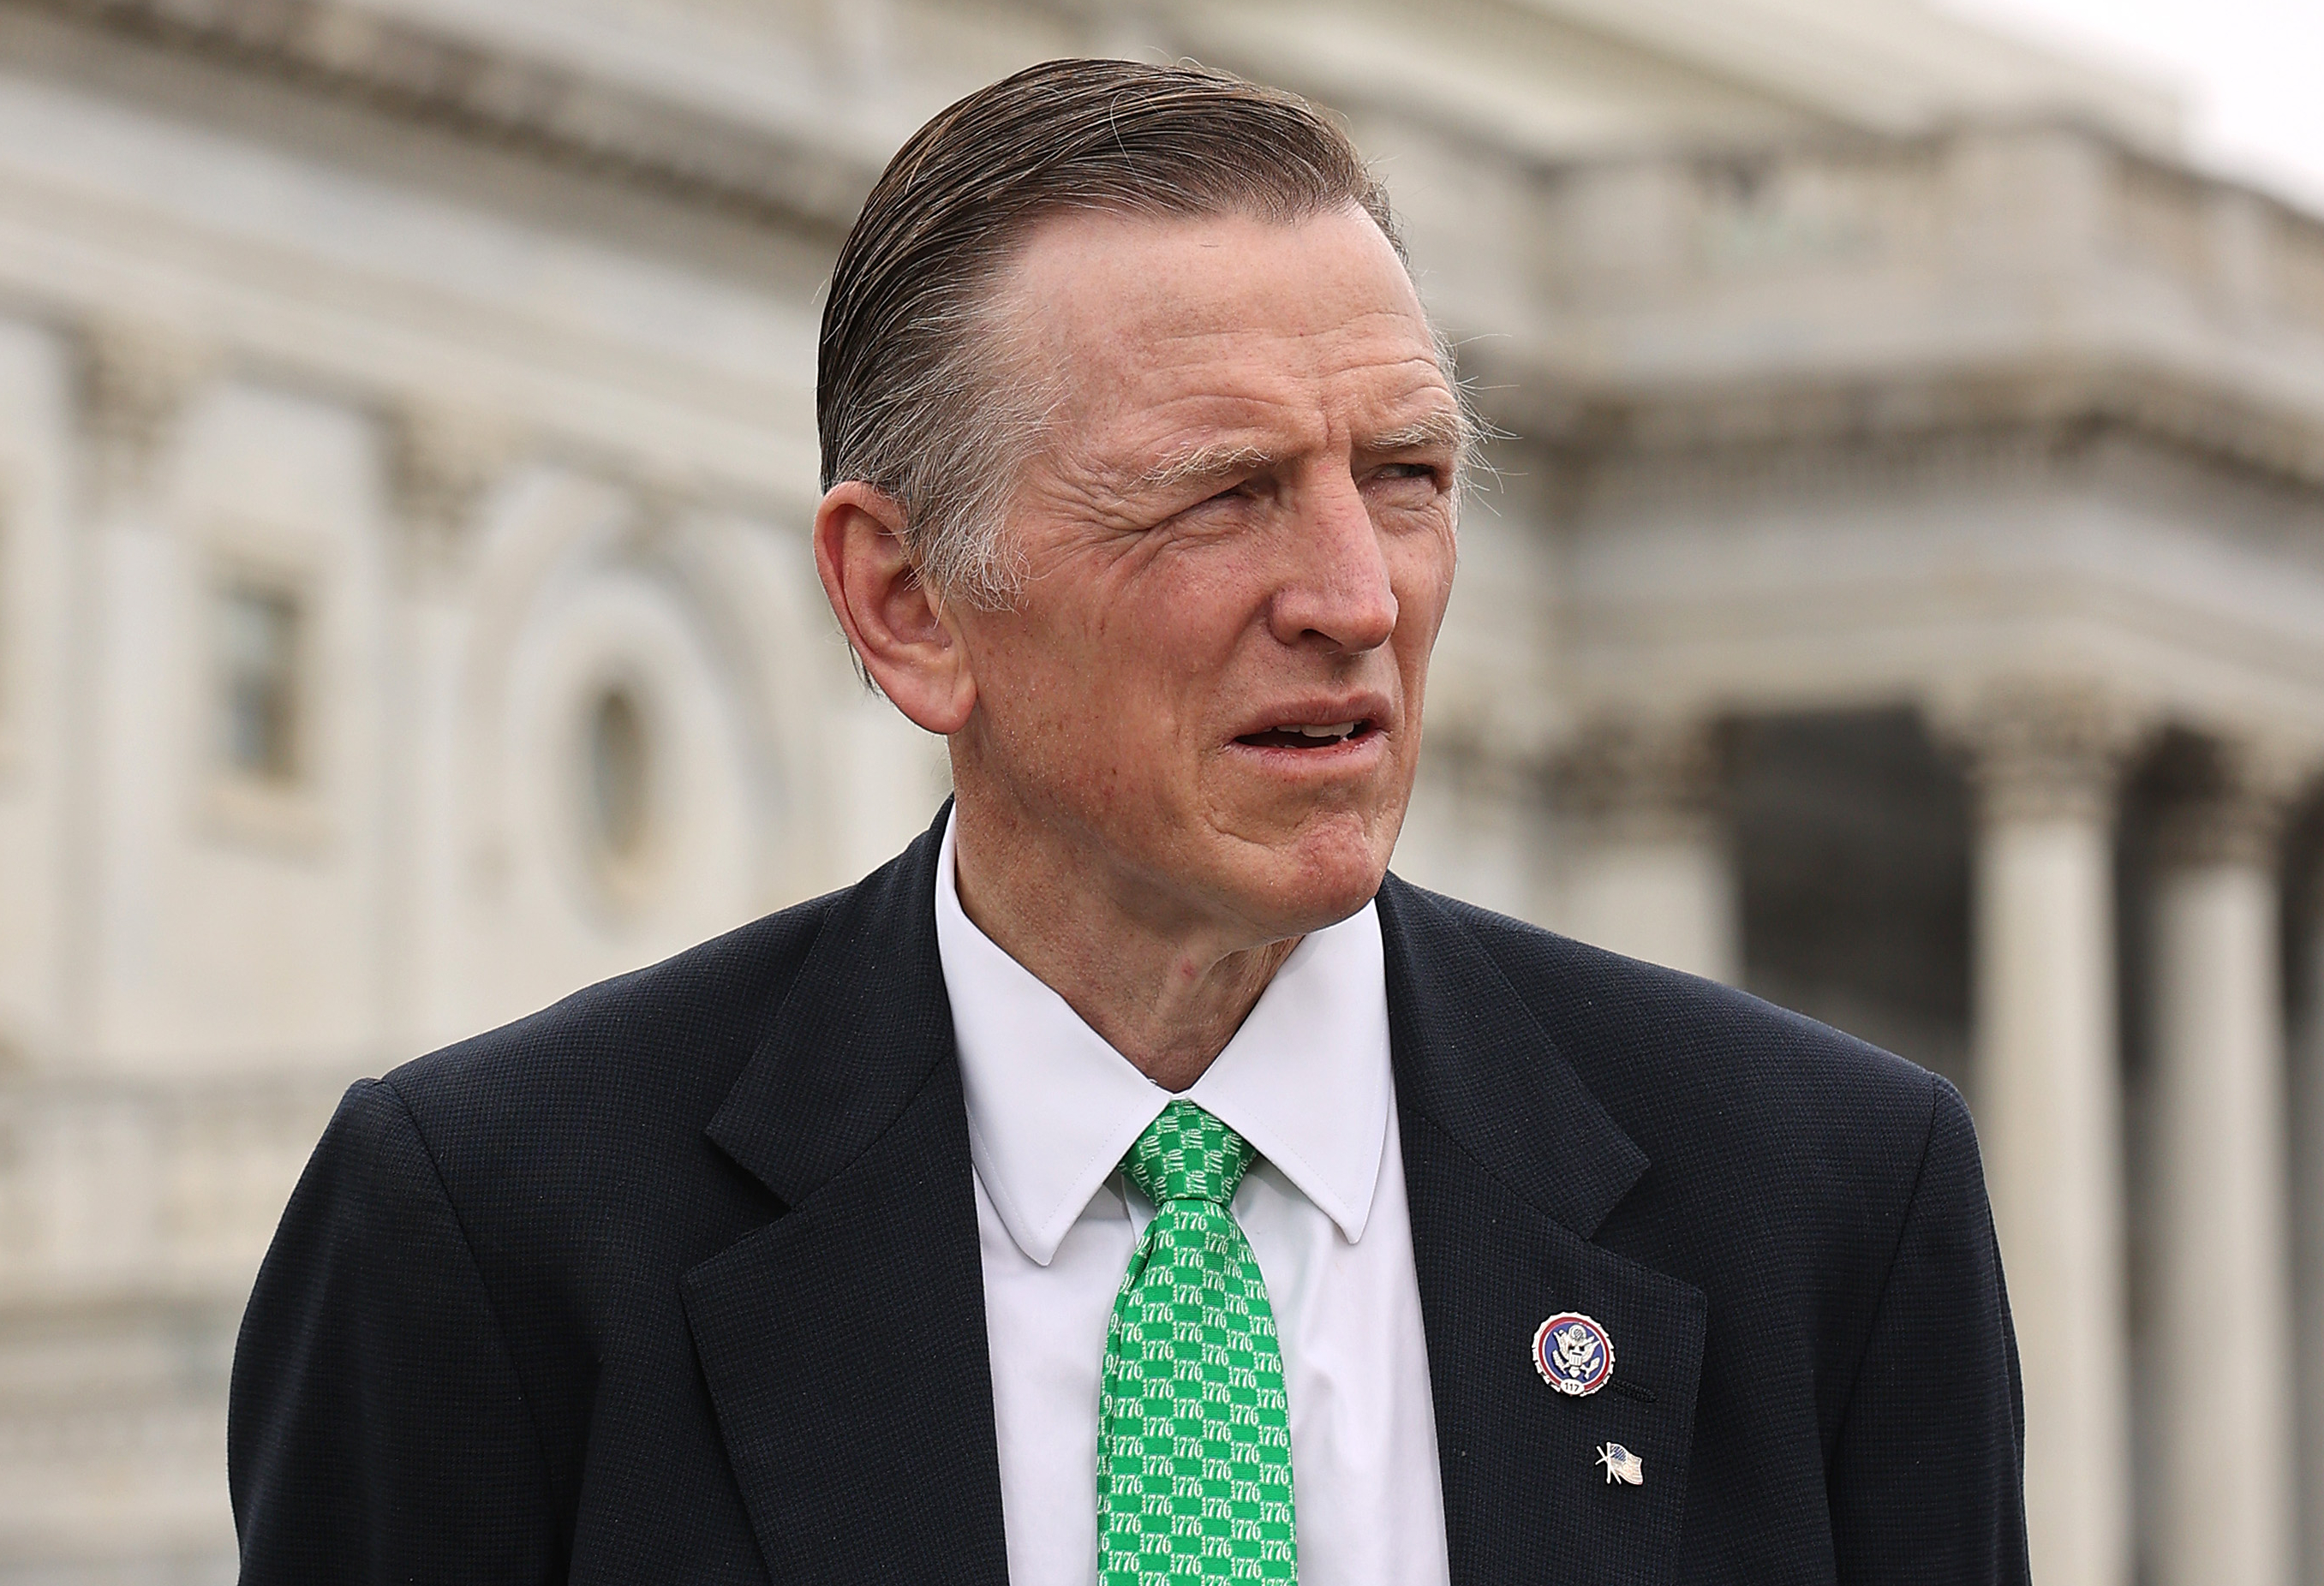 Paul Gosar's Family Tears Into Him in Op-Ed—'Have You No Sense of Decency?'